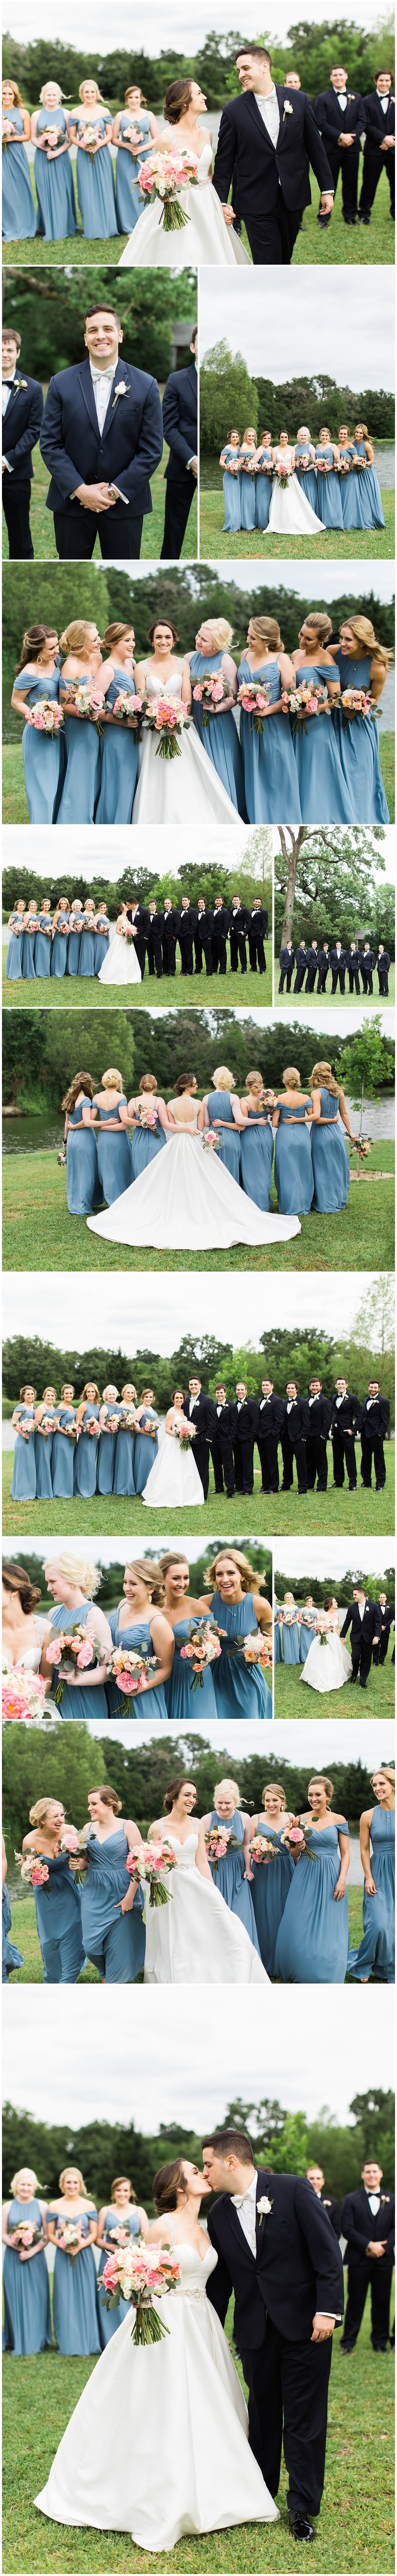 Brownstone_Reserve_Wedding_Kristina_Ross_Photography_0022.jpg